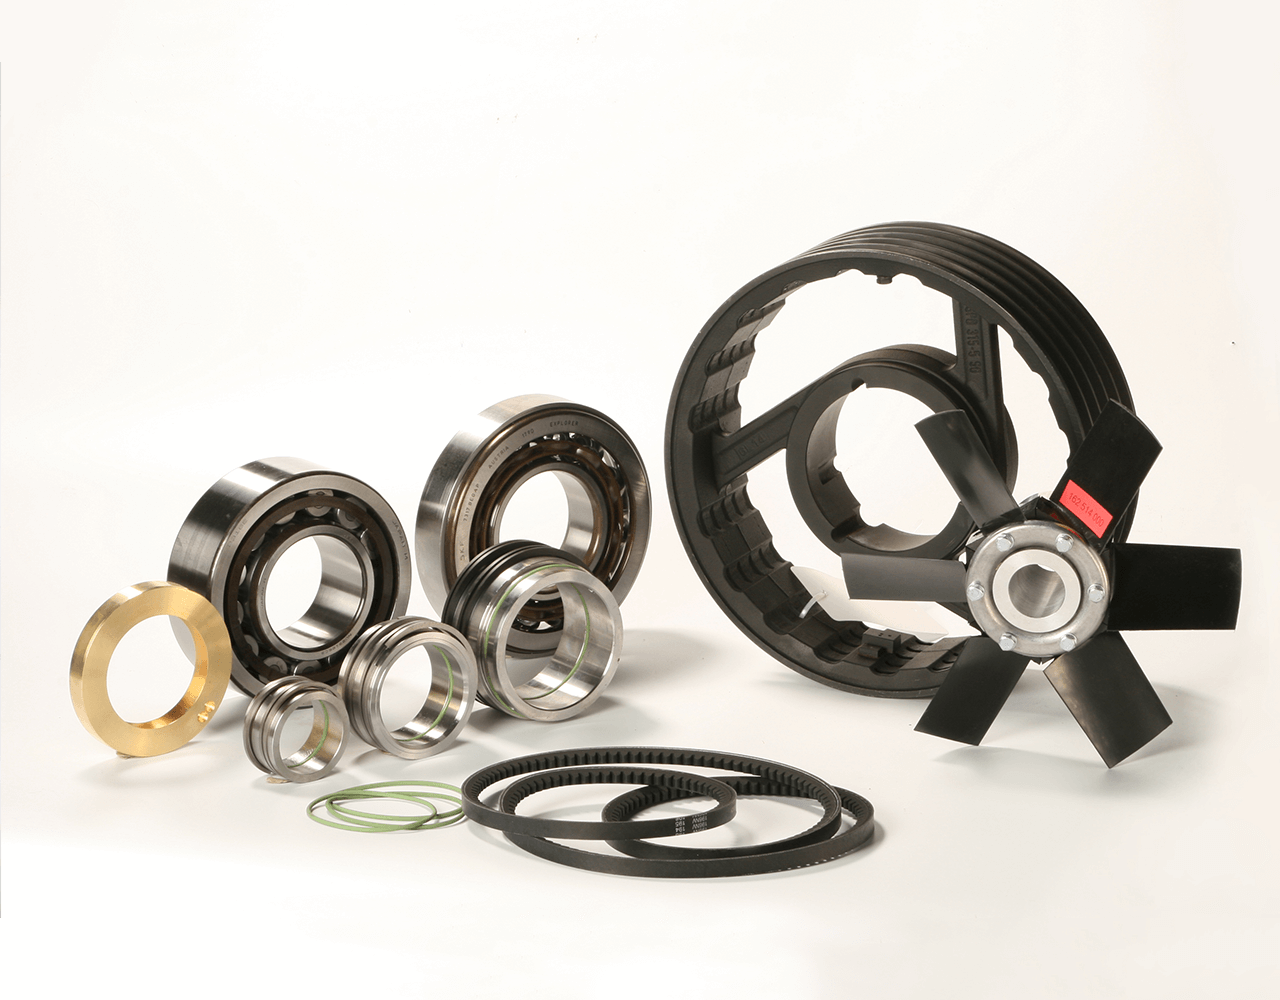 Some AERZEN spare parts at a glance